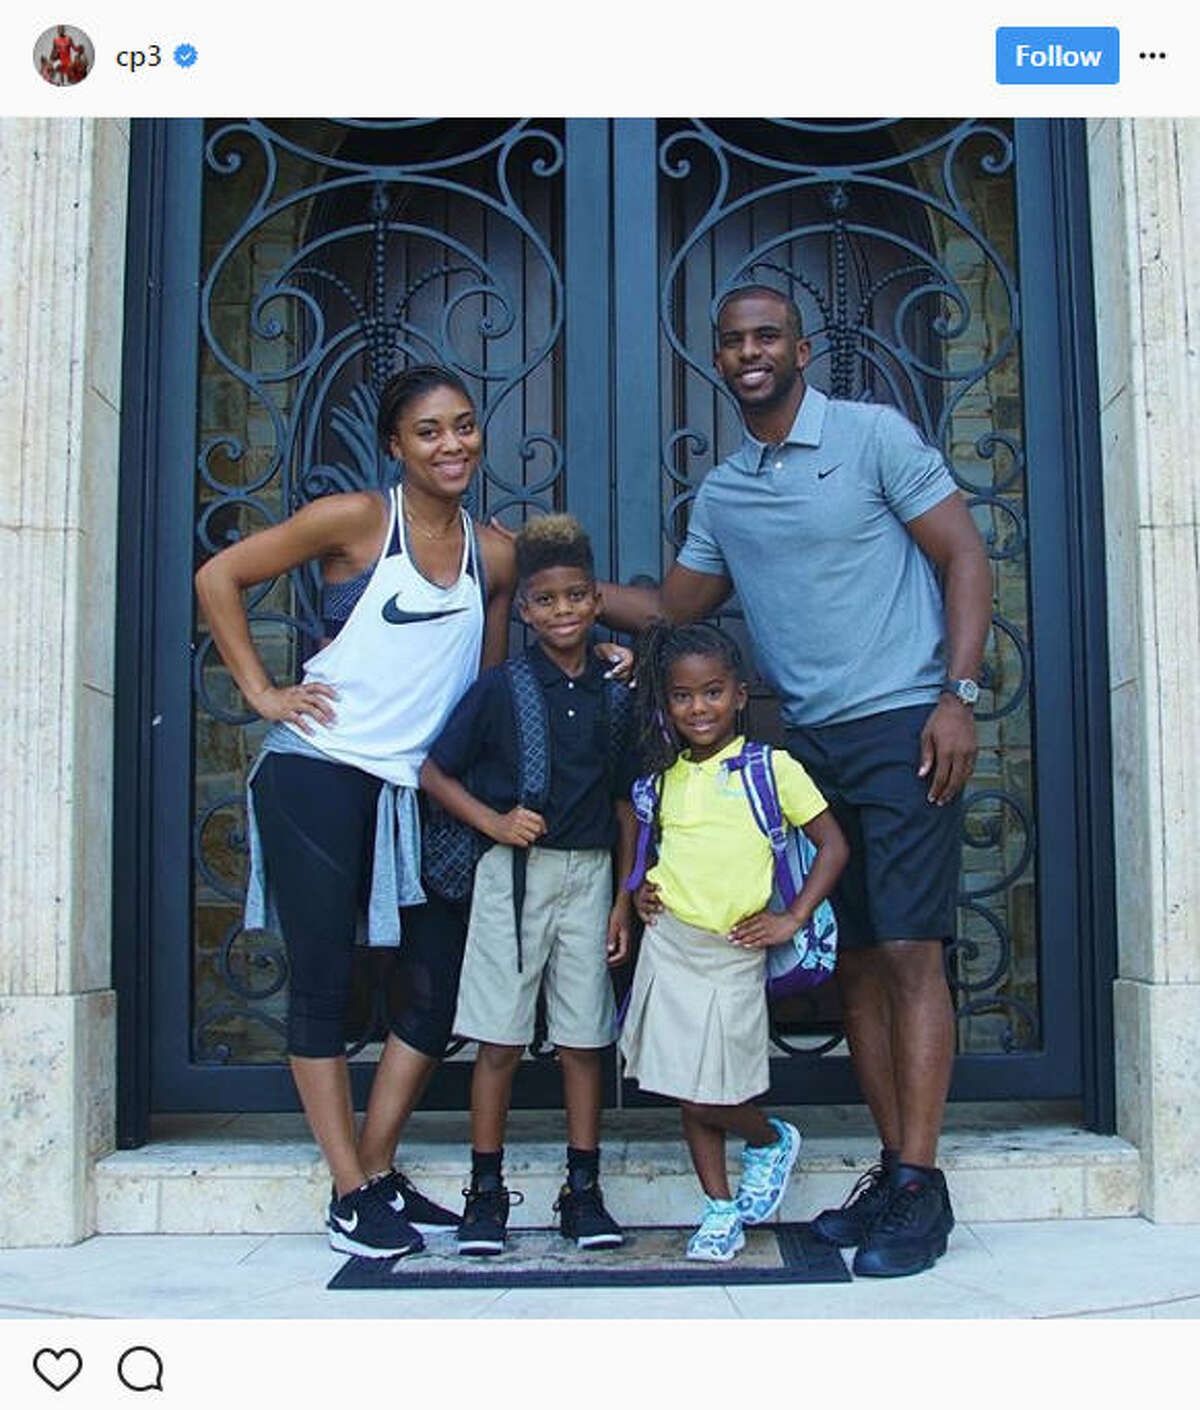 Chris Paul is among the dozens of Houston-area parents and teachers boasting their first day of school photos of their kids. Keep going to see the adorable local kids shared on social media by their parents for the first day of school.Source: Instagram